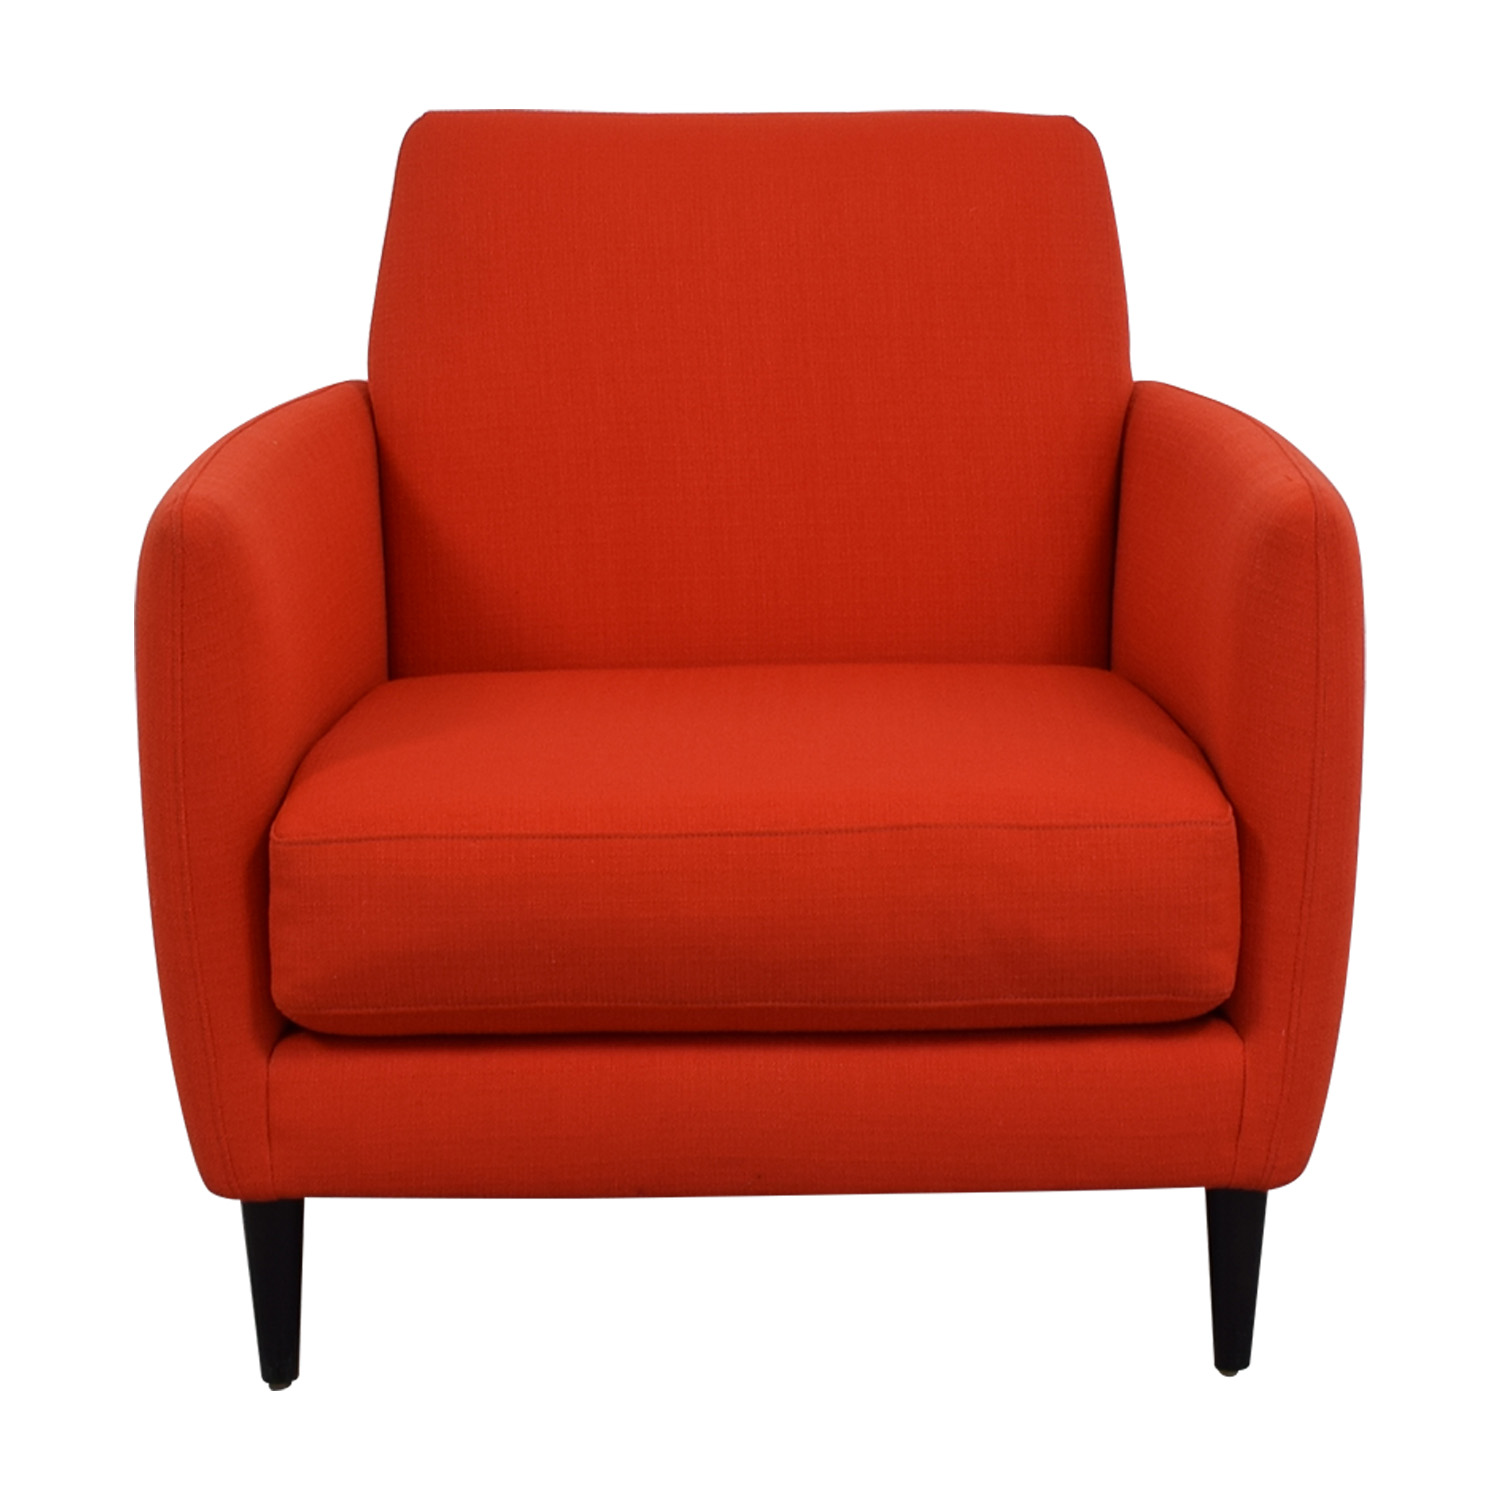 Shop CB2 Orange Red Parlour Chair CB2 Accent Chairs ...